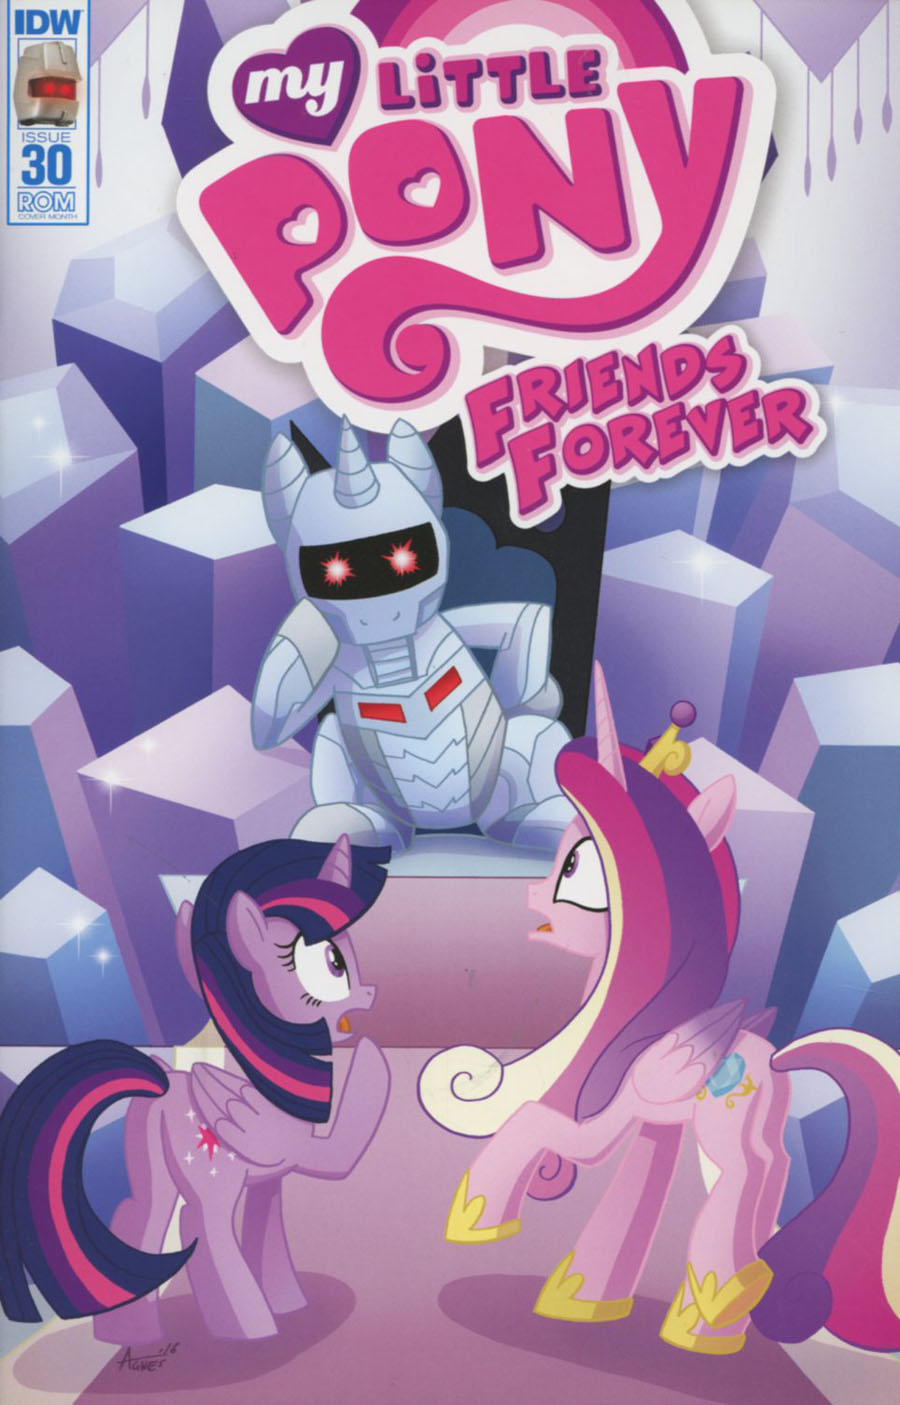 My Little Pony Friends Forever #30 Cover B Variant Agnes Garbowska ROM Subscription Cover